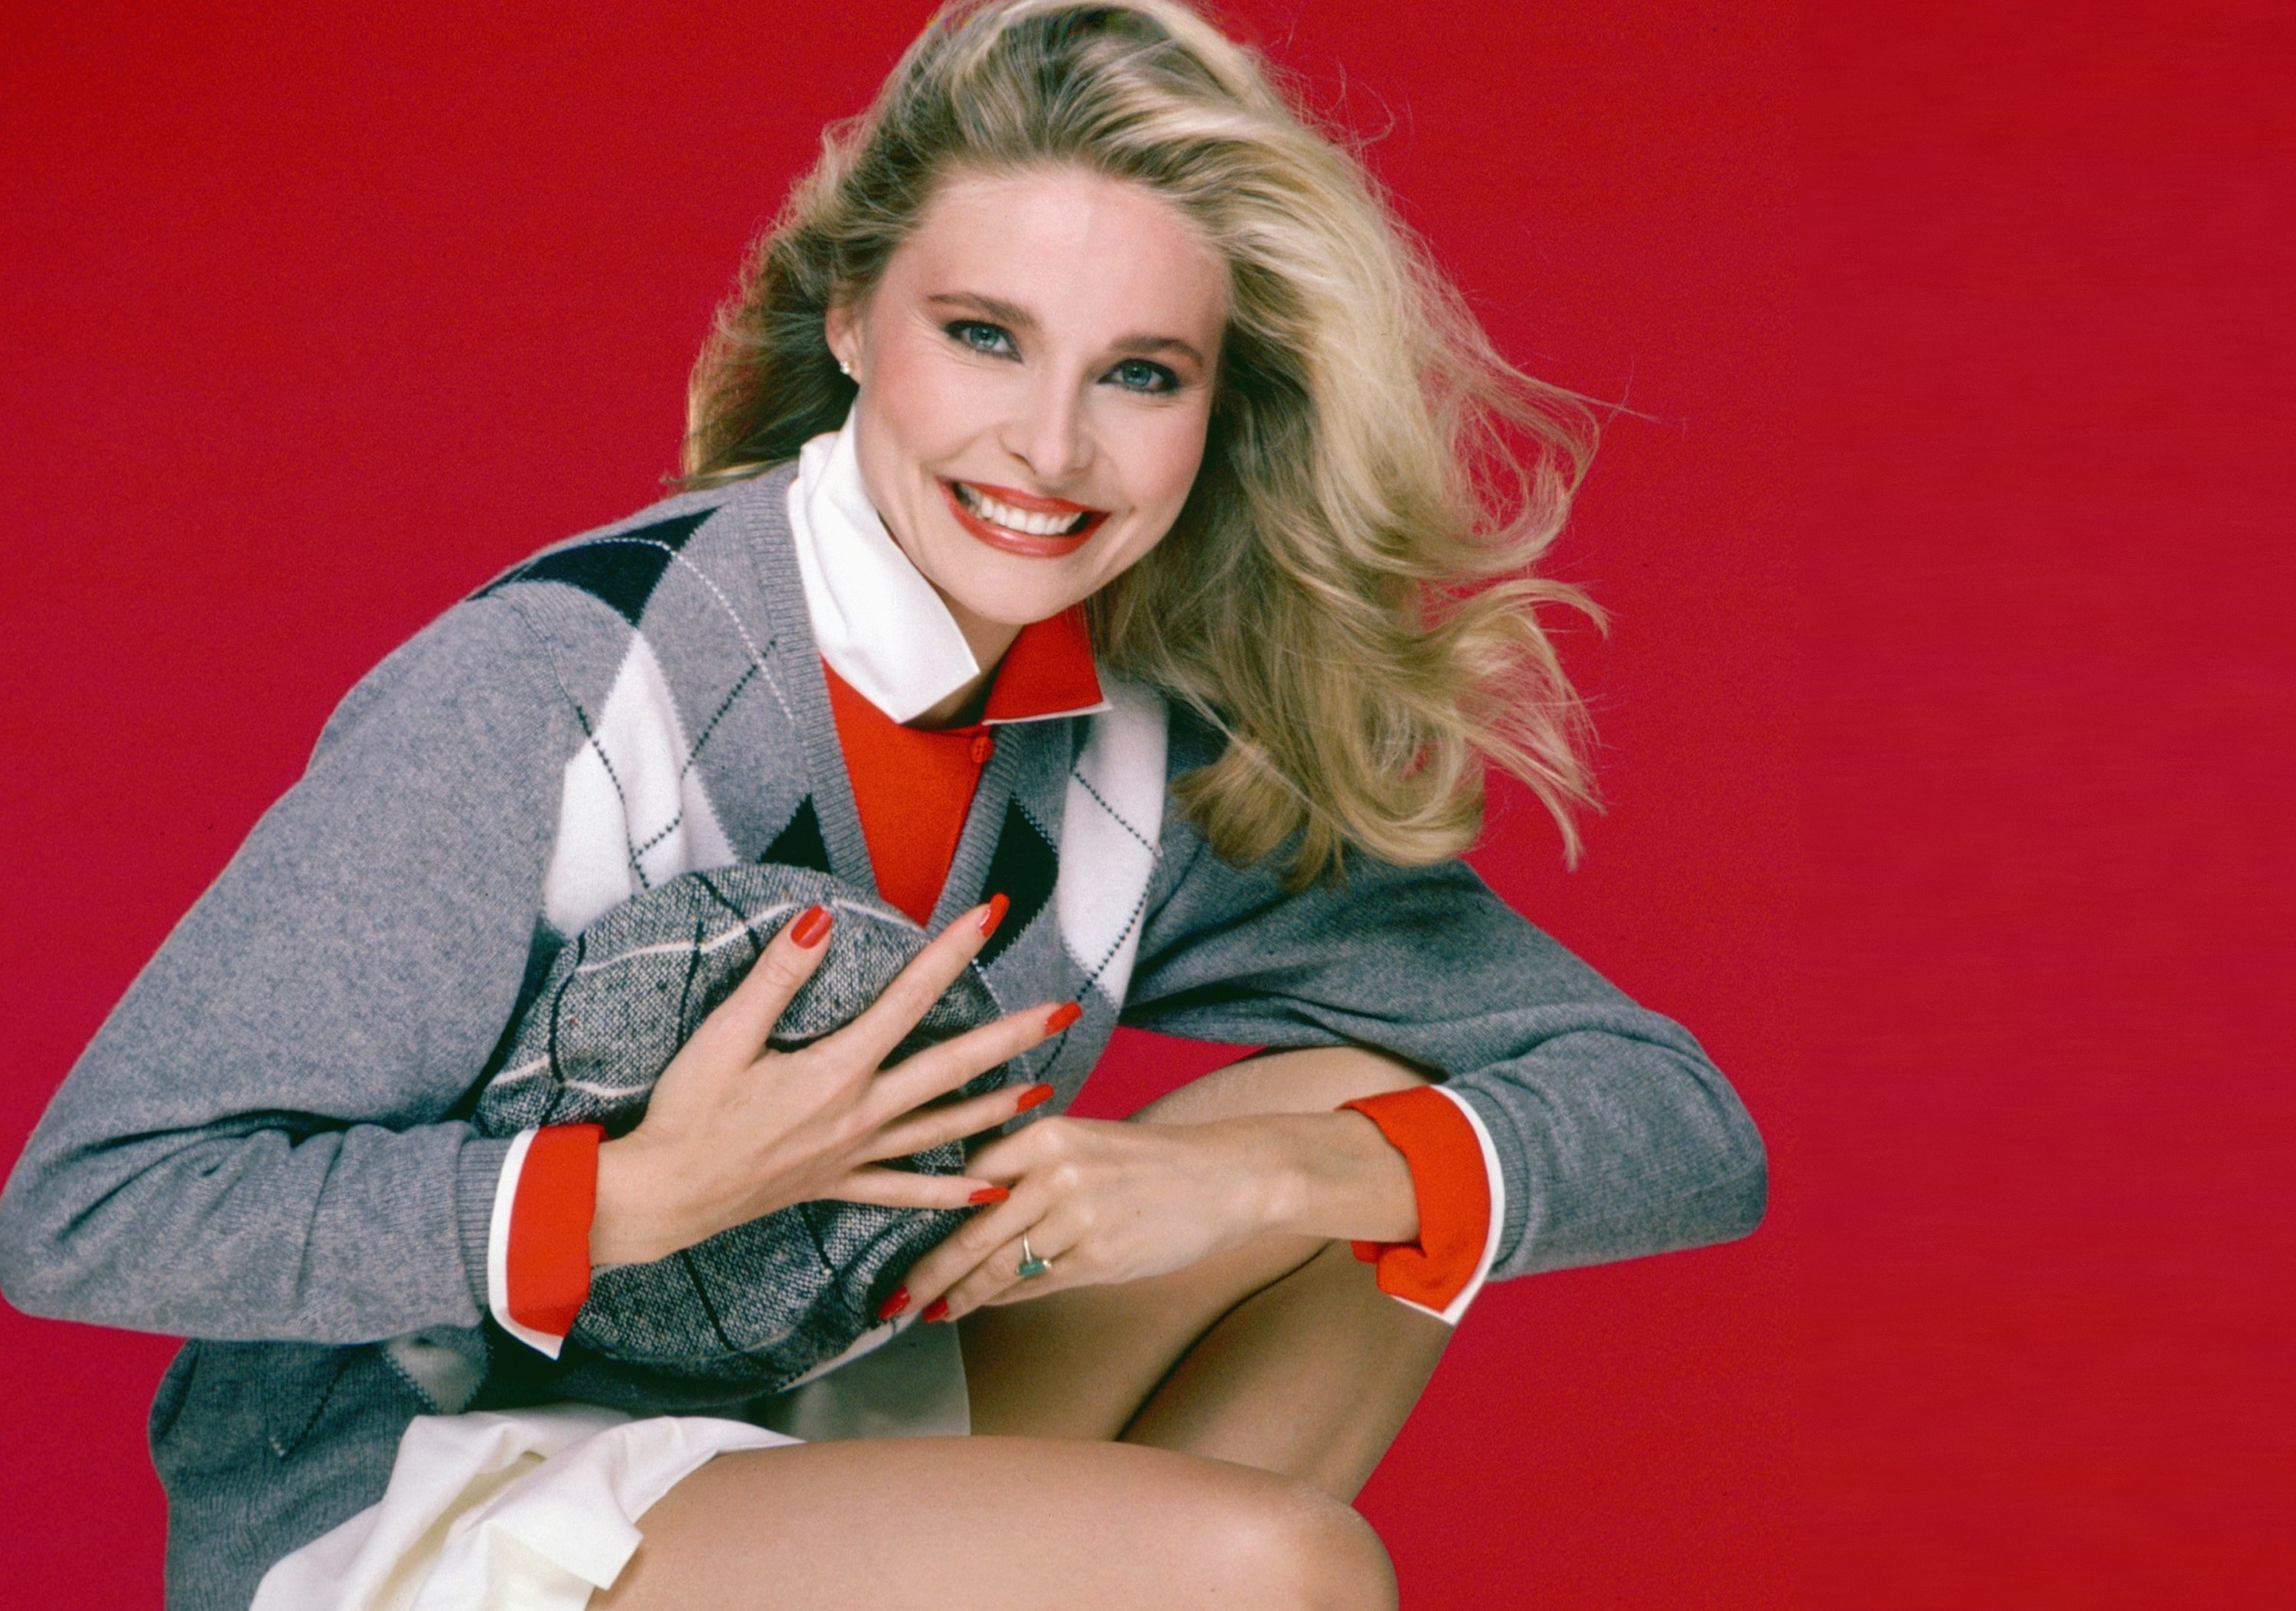 Priscilla Barnes HQ wallpapers